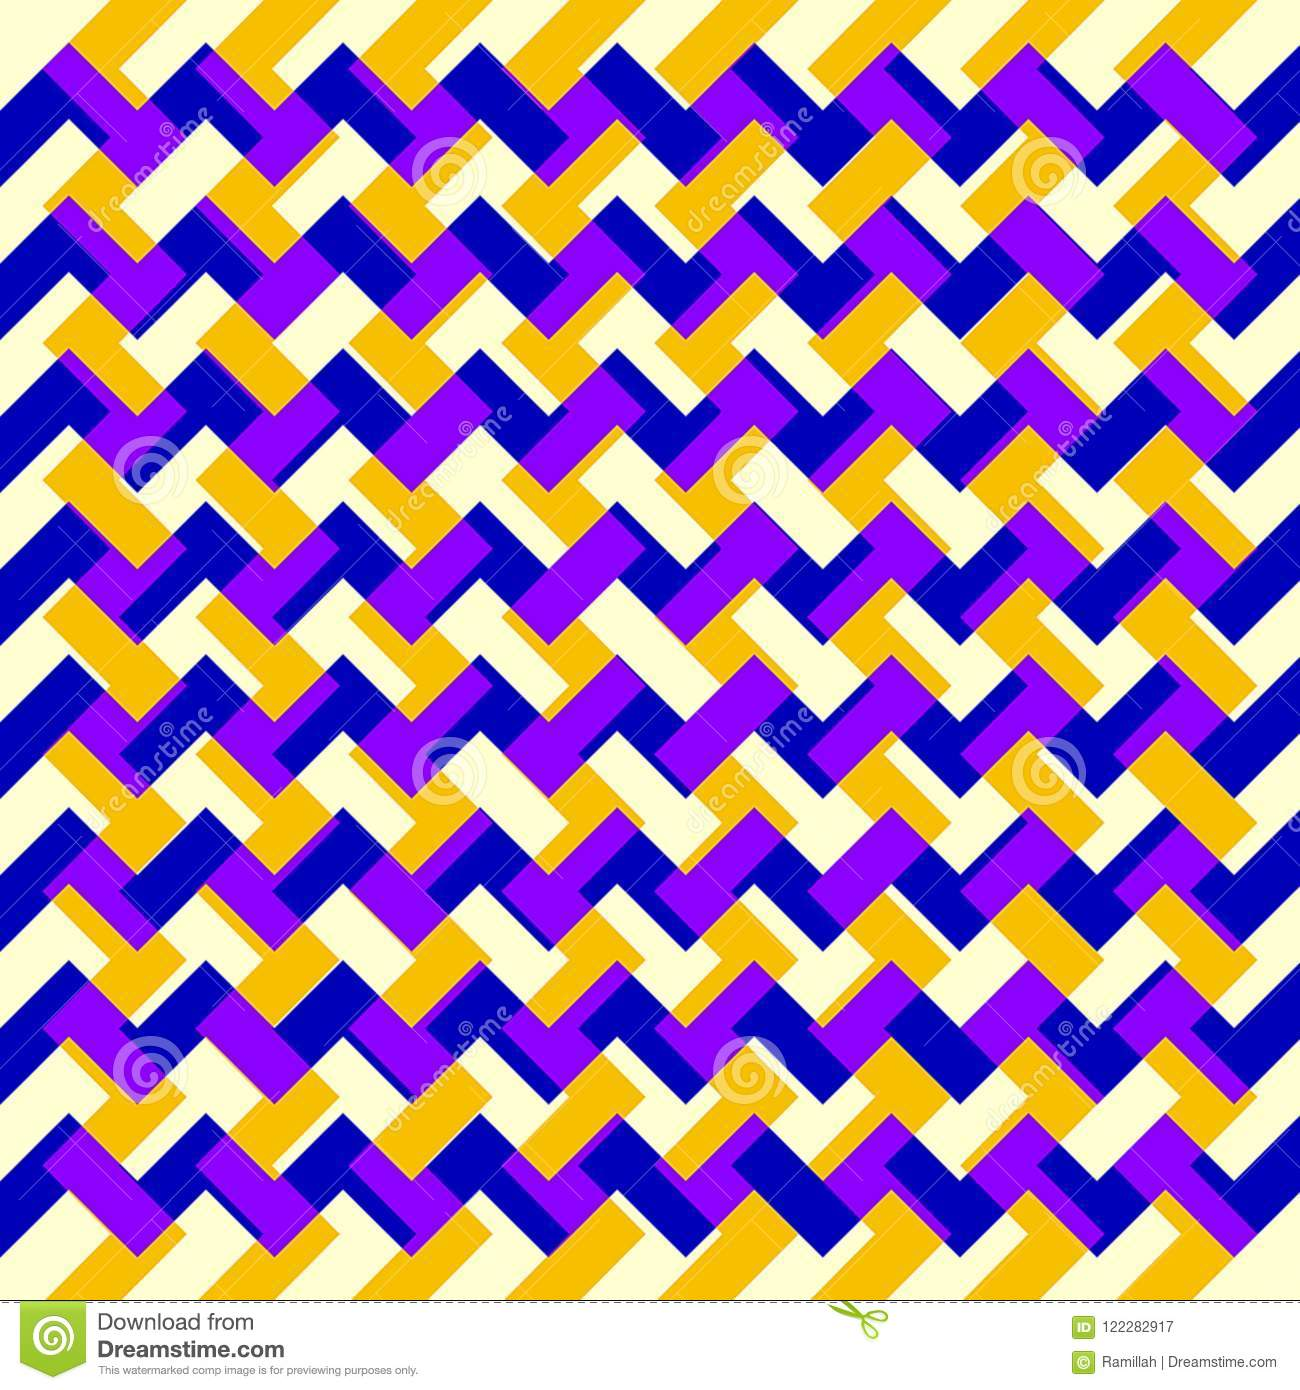 Digital Painting Beautiful Abstract Colorful Wavy Triangular Zigzag Texture Layer Pattern Background